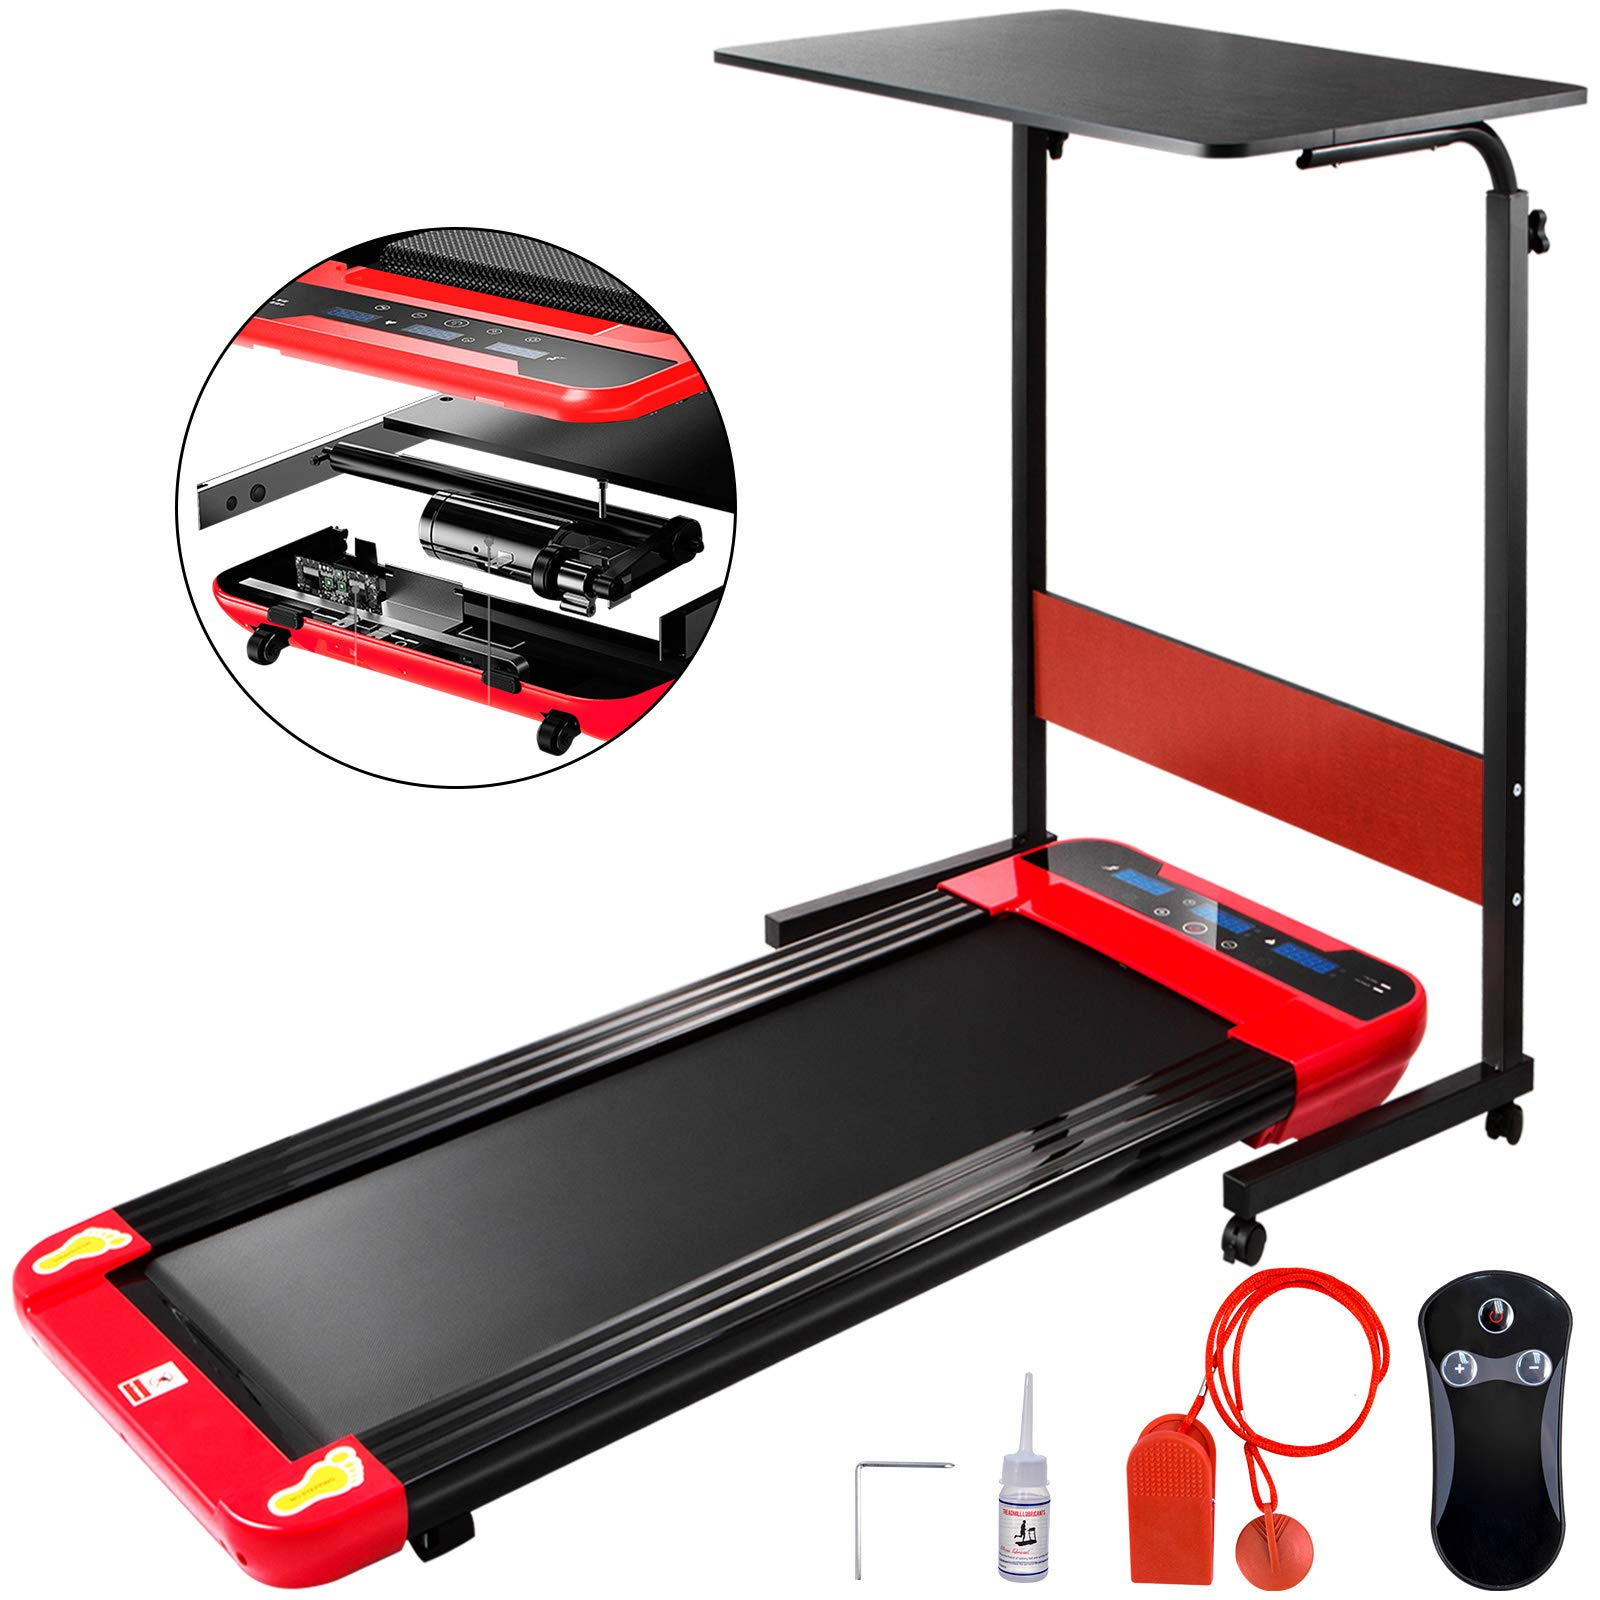 Popsport Treadly Treadmill Running Surface Compact Slim Fitness Training Cardio Equipment for Home Workouts(Red Black with Desk) by Popsport